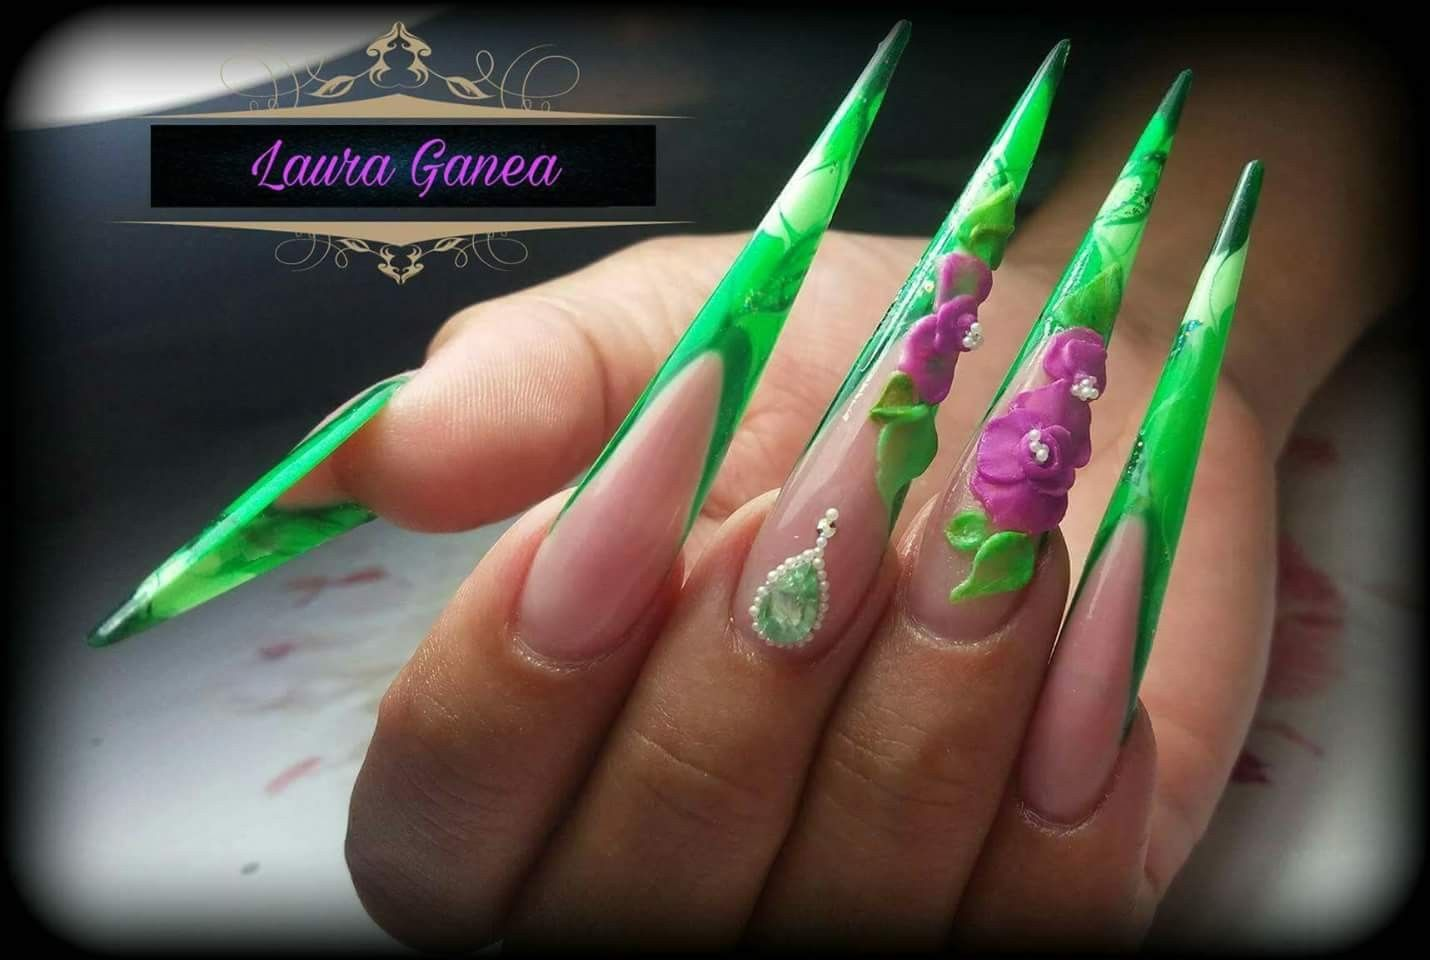 extreme #extreme nails #nailpro #amazing nails #best nails #fashion ...